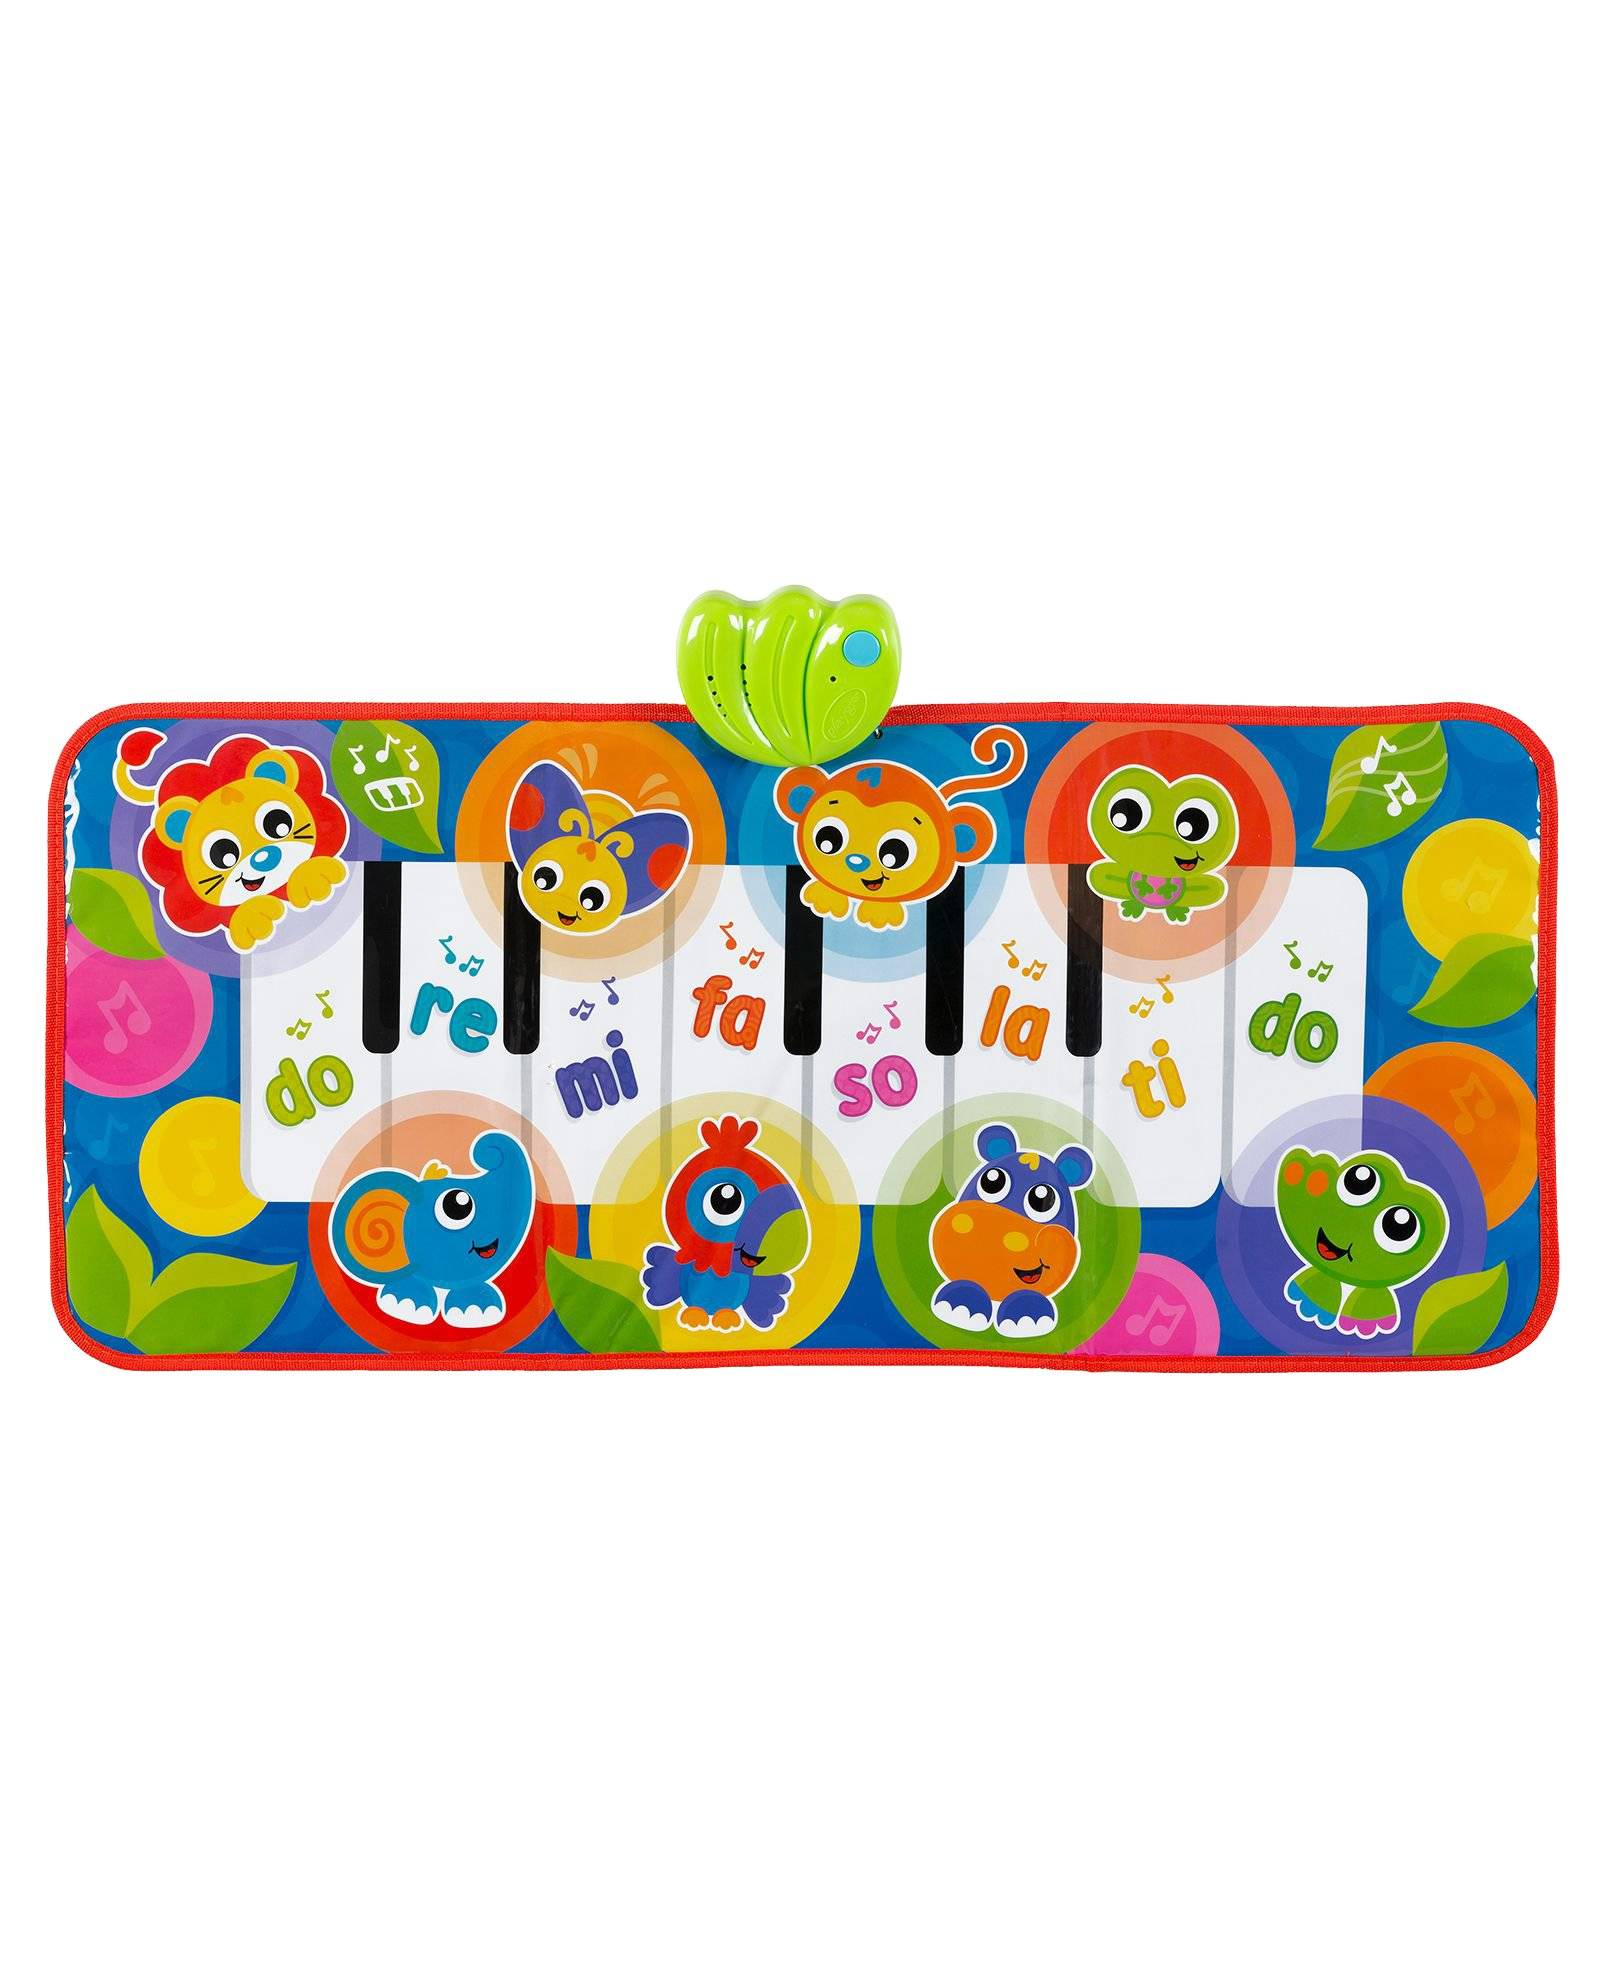 Playgro Jumbo Jungle Musical Piano Mat (10186995)